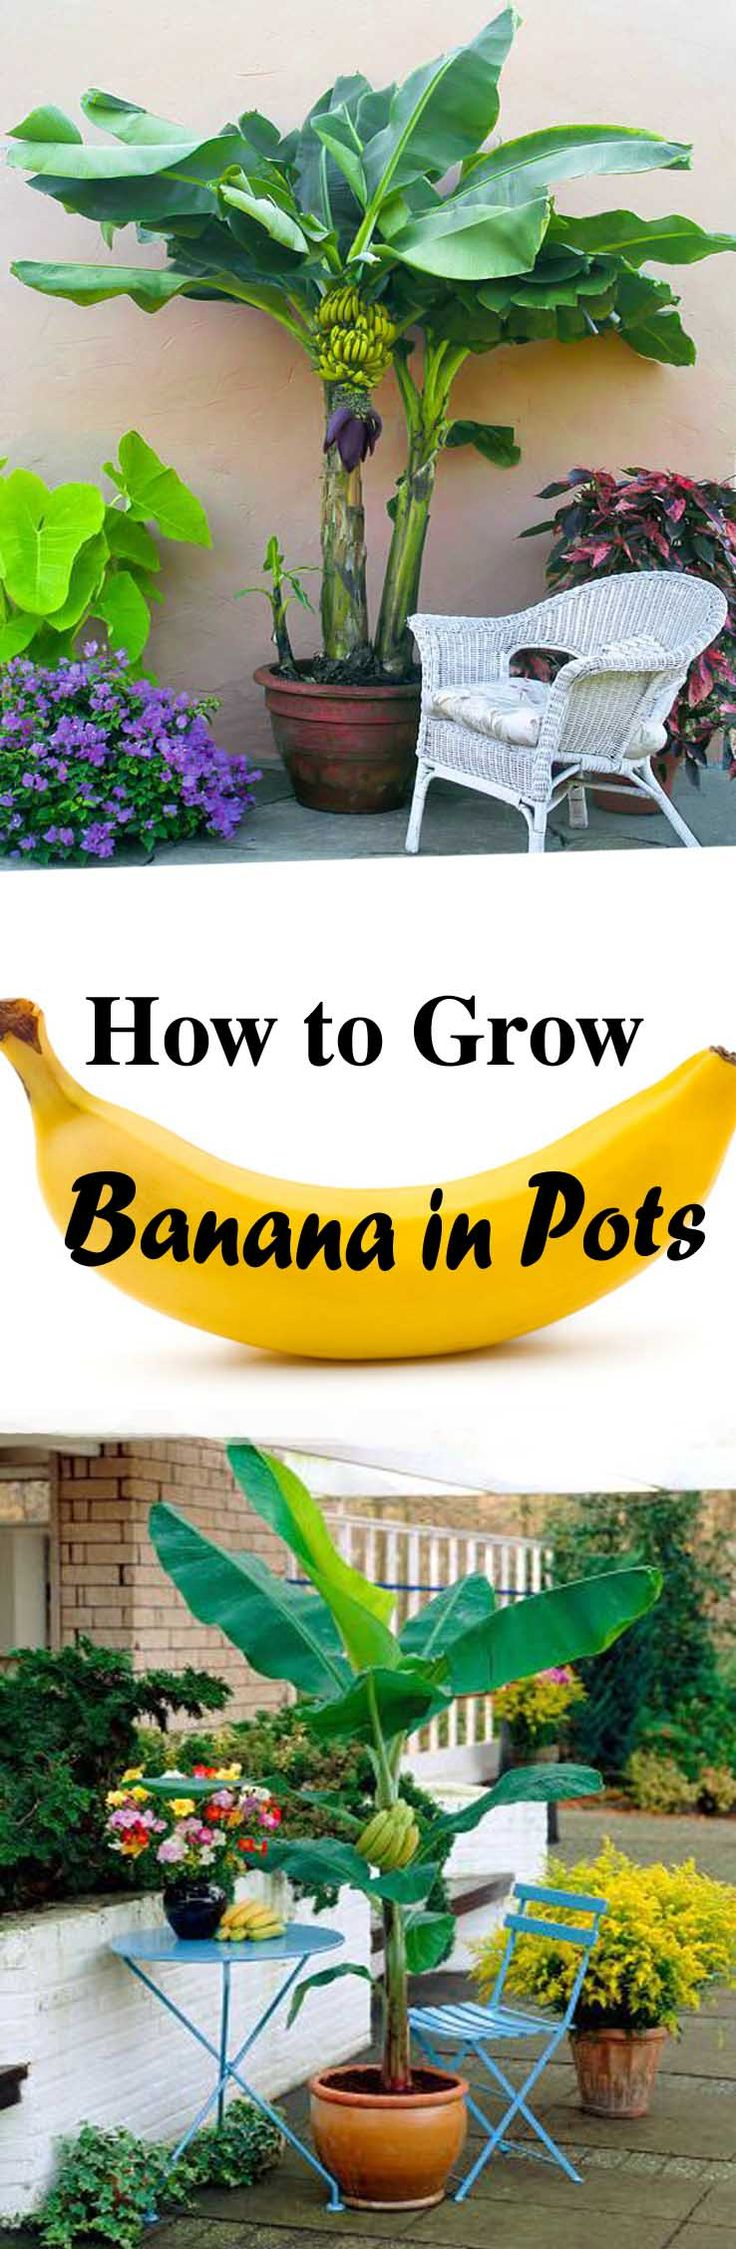 Growing bananas in pots